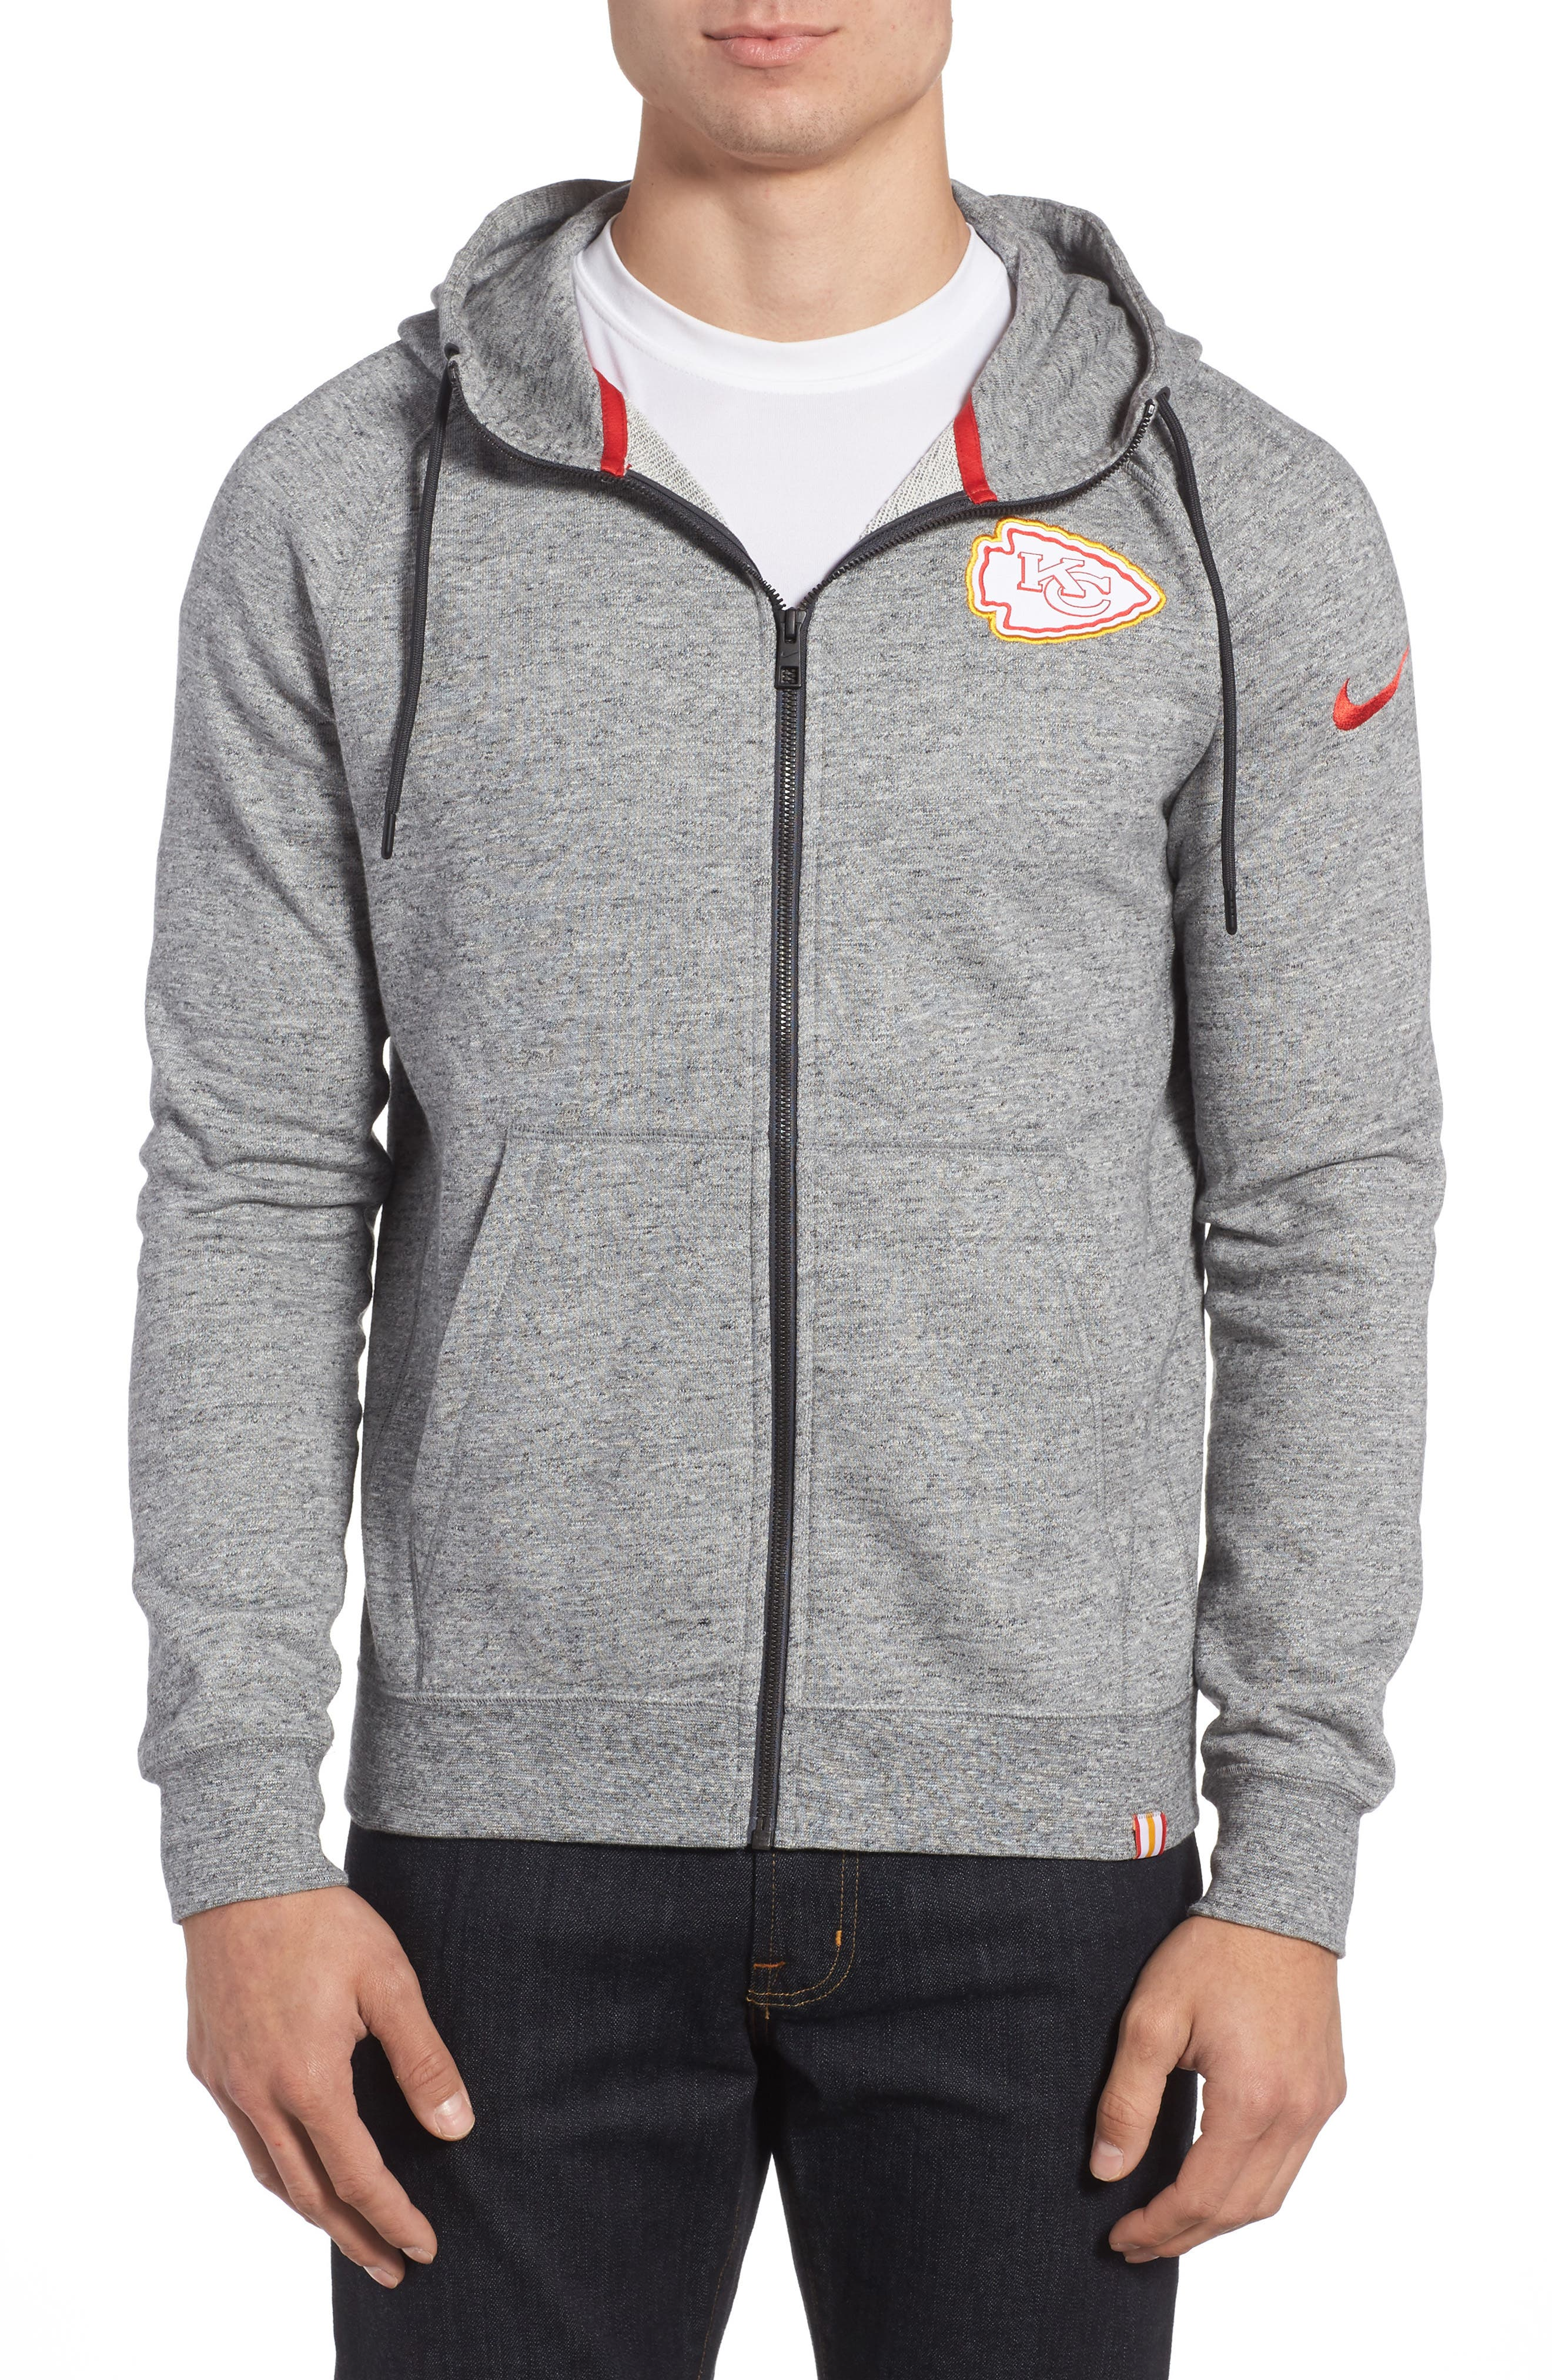 Nike AW77 NFL Graphic Zip Hoodie